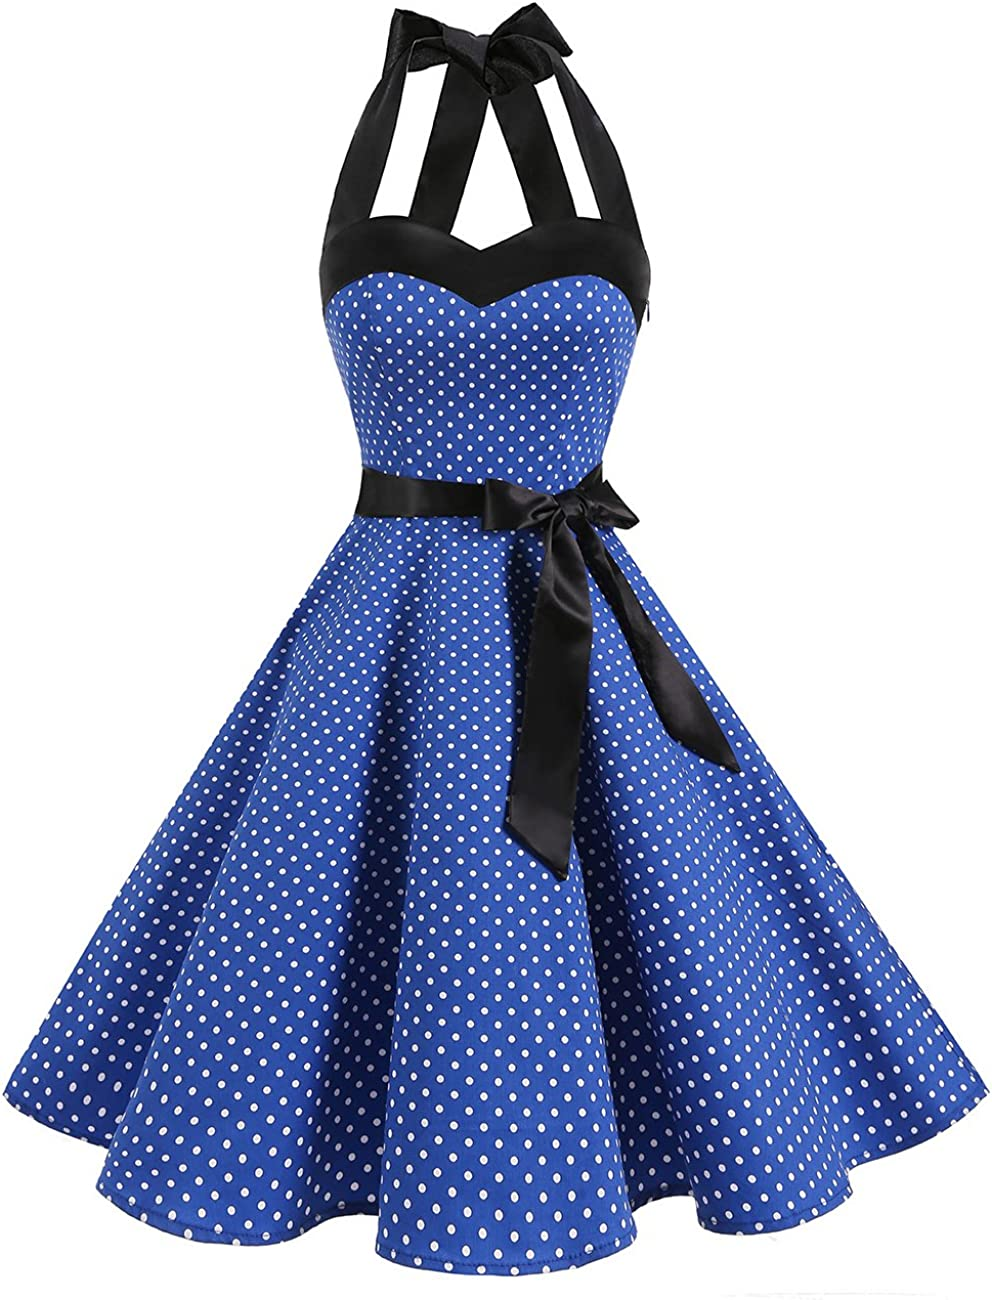 TALLA XXL. Dresstells® Halter 50s Rockabilly Polka Dots Audrey Dress Retro Cocktail Dress Royal Blue Small White Dot XXL